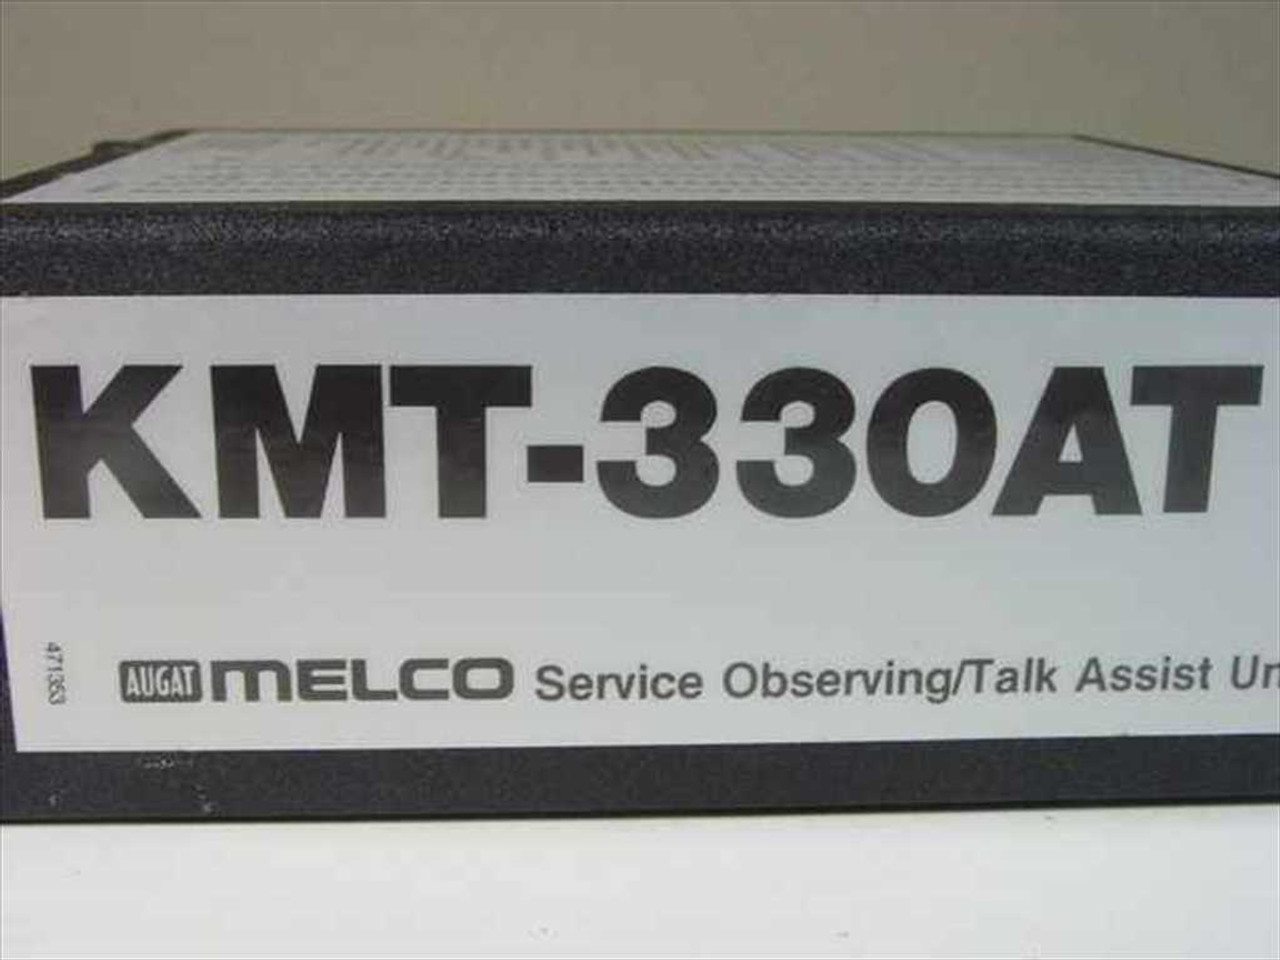 Augat Melco KMT-330AT Service Observing/Talk Assist Unit